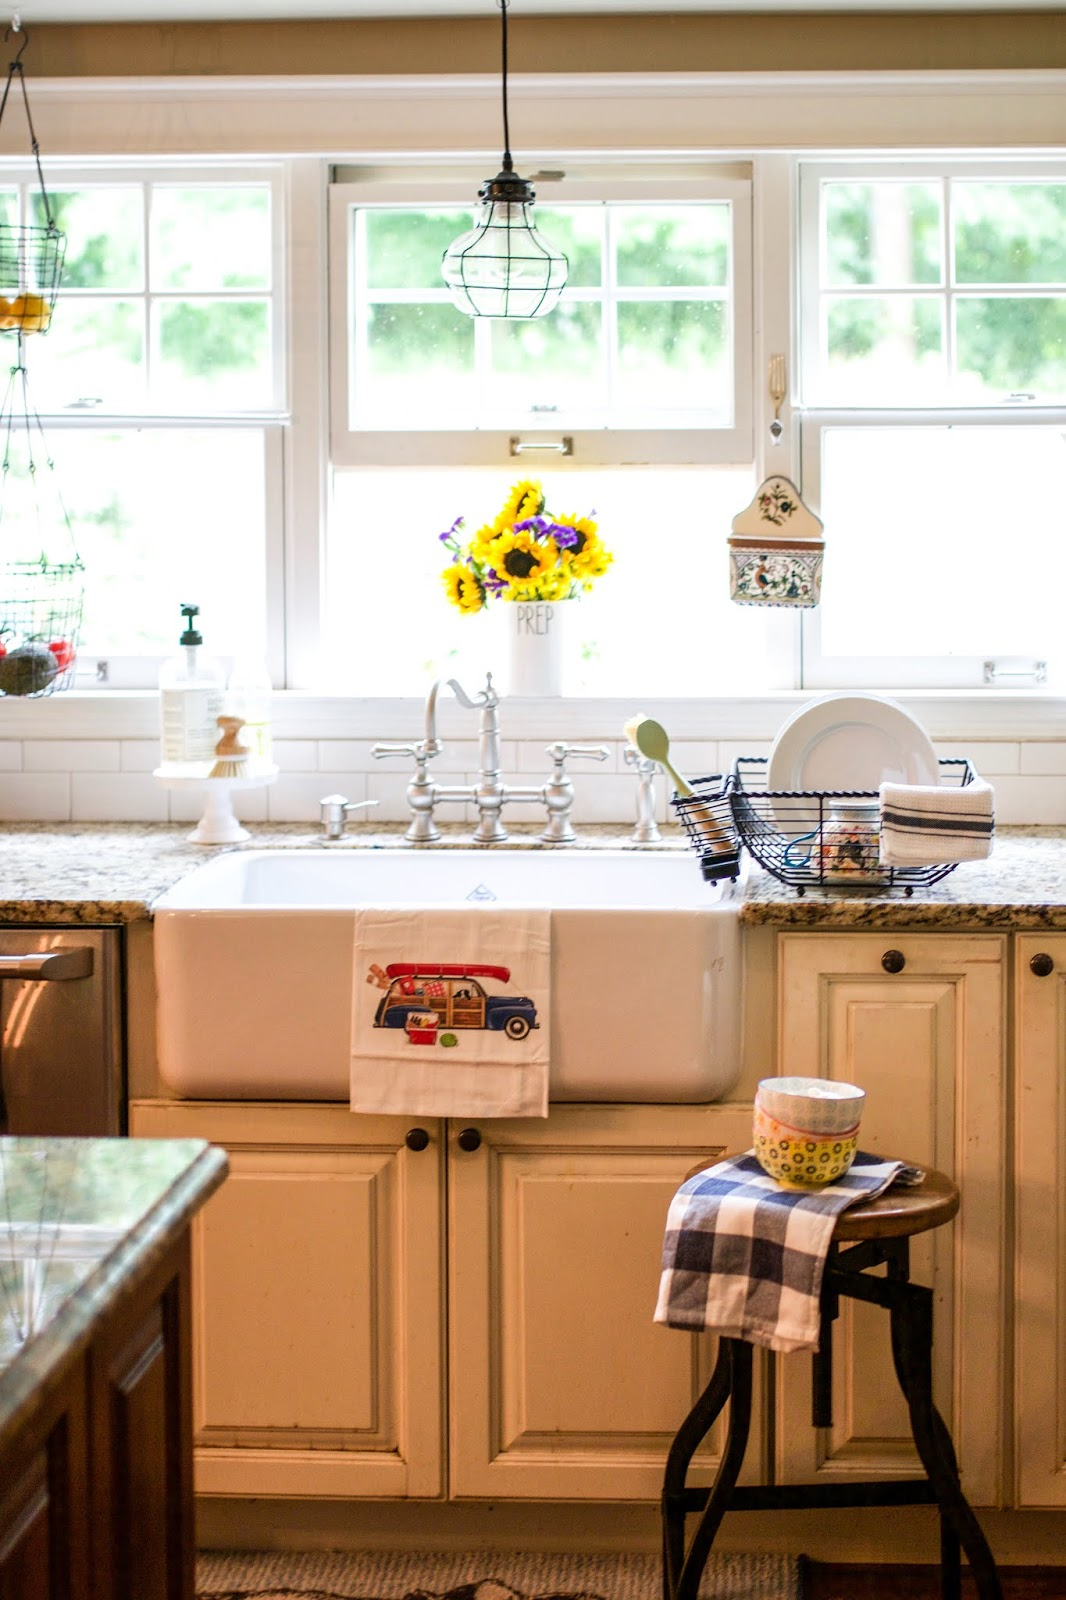 Split Level Kitchen Remodel Photos: Golden Boys And Me: Our Split-Level Summer Kitchen